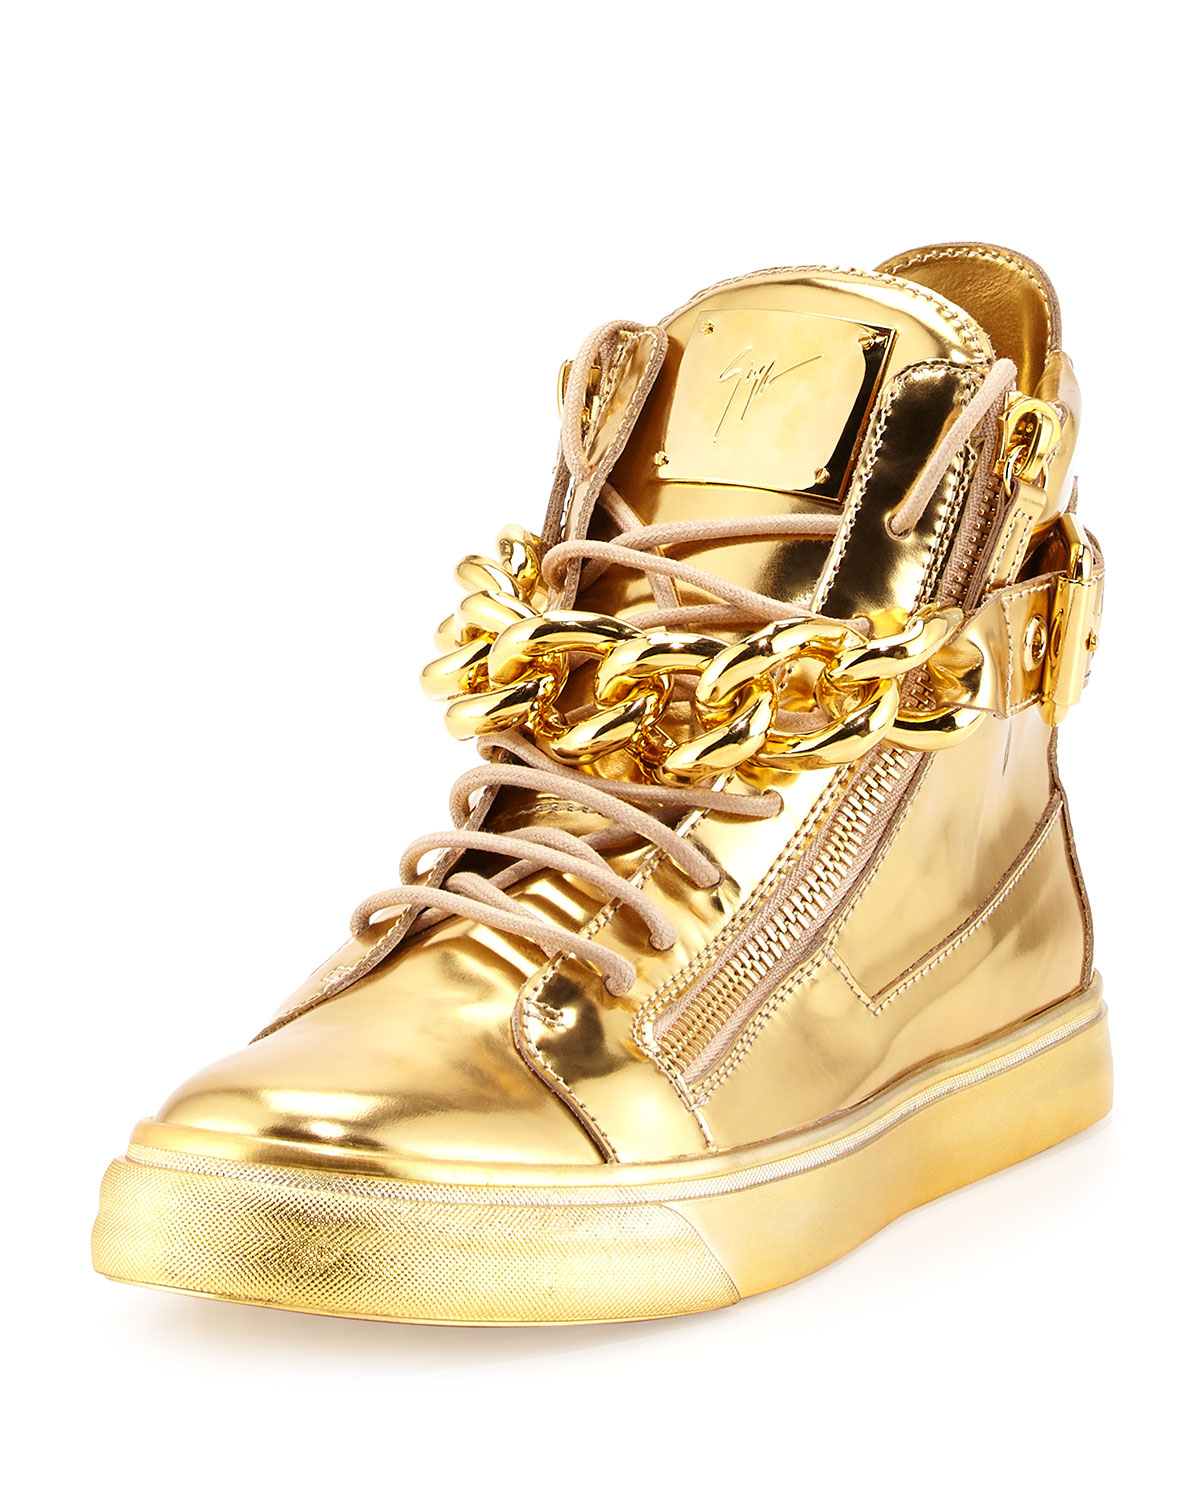 Gold High Top Sneakers Car Interior Design